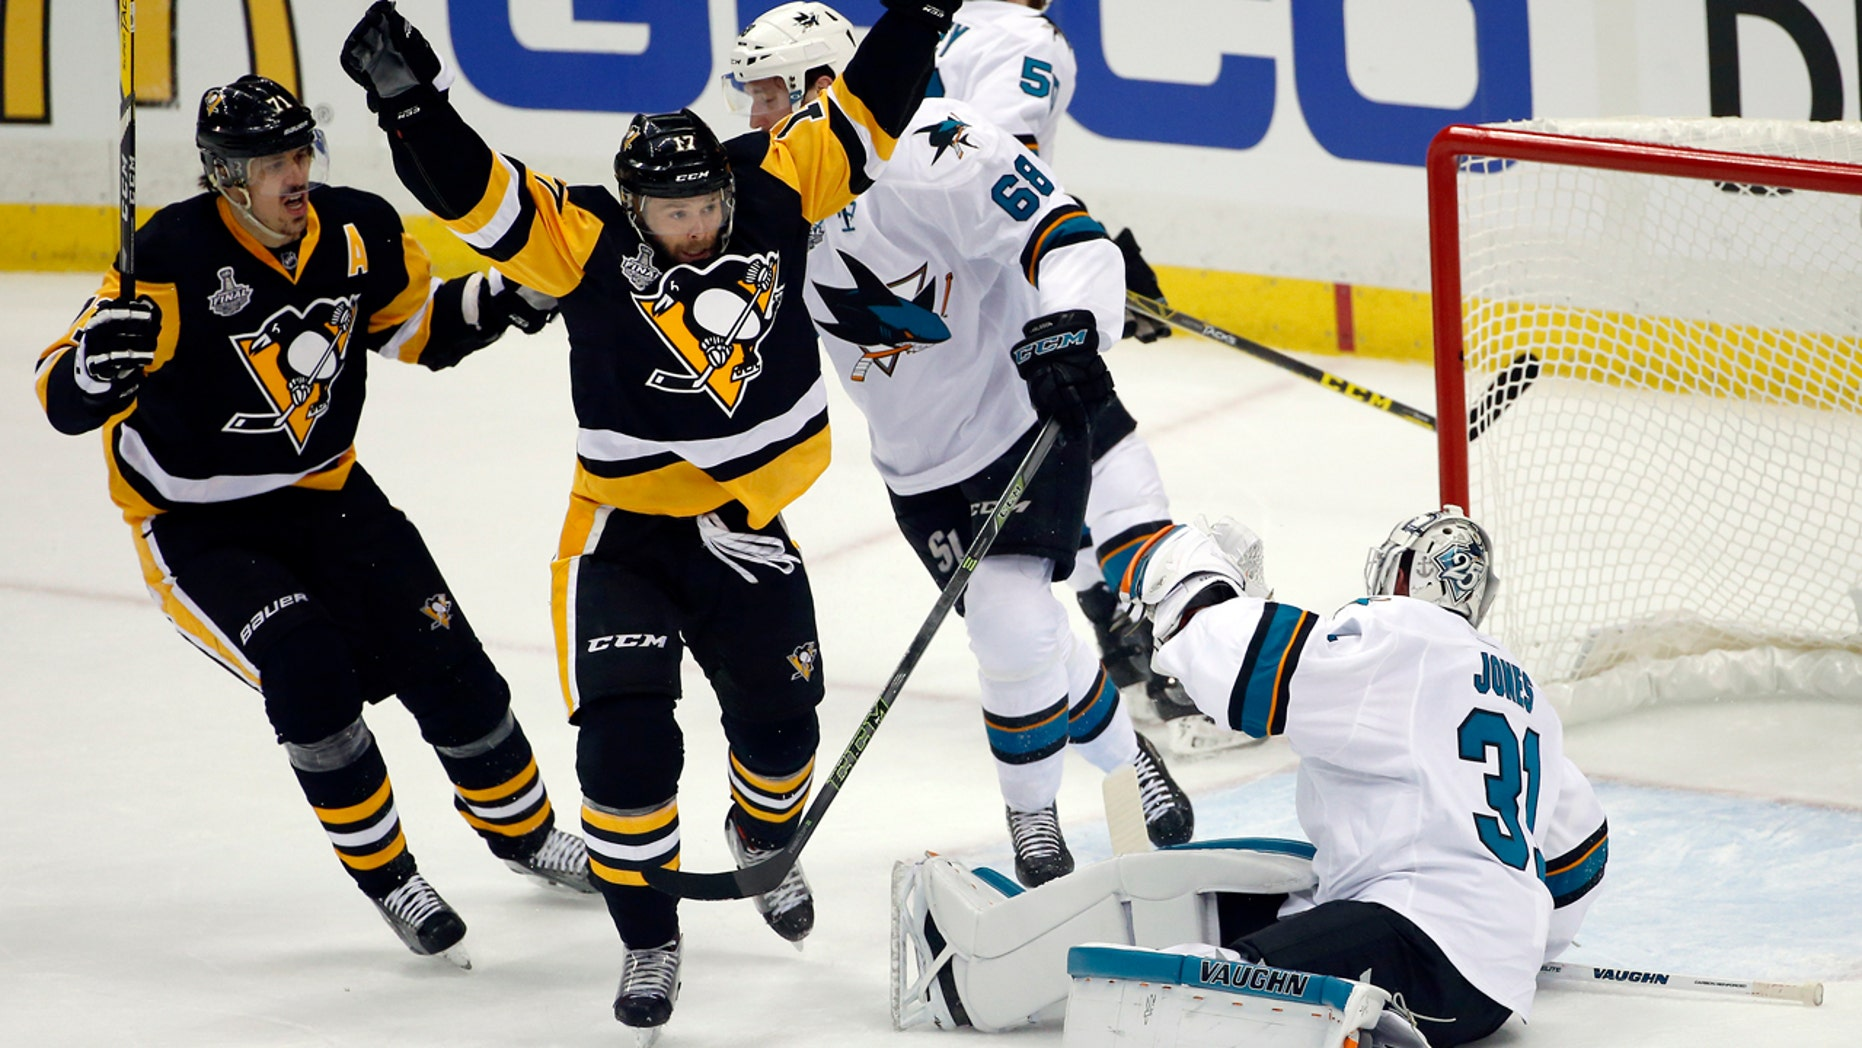 May 30, 2016: Pittsburgh Penguins' Bryan Rust, center, celebrates his goal against San Jose Sharks goalie Martin Jones (31) during the first period in Game 1 of the Stanley Cup final in Pittsburgh.